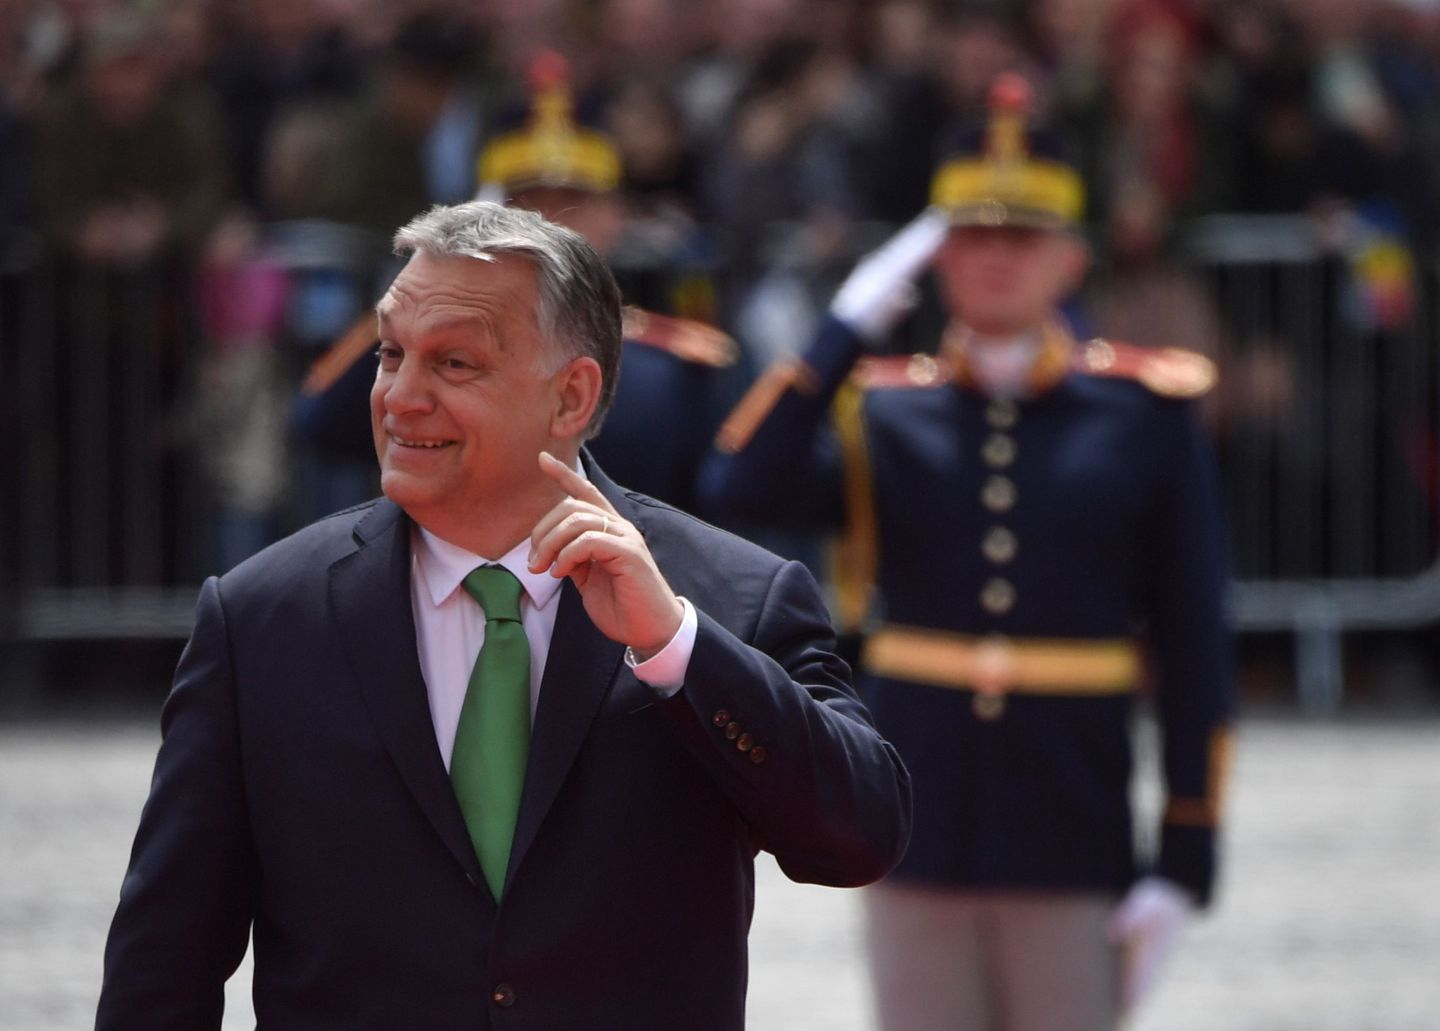 Donald Trump's lonely dream of Viktor Orban-like power